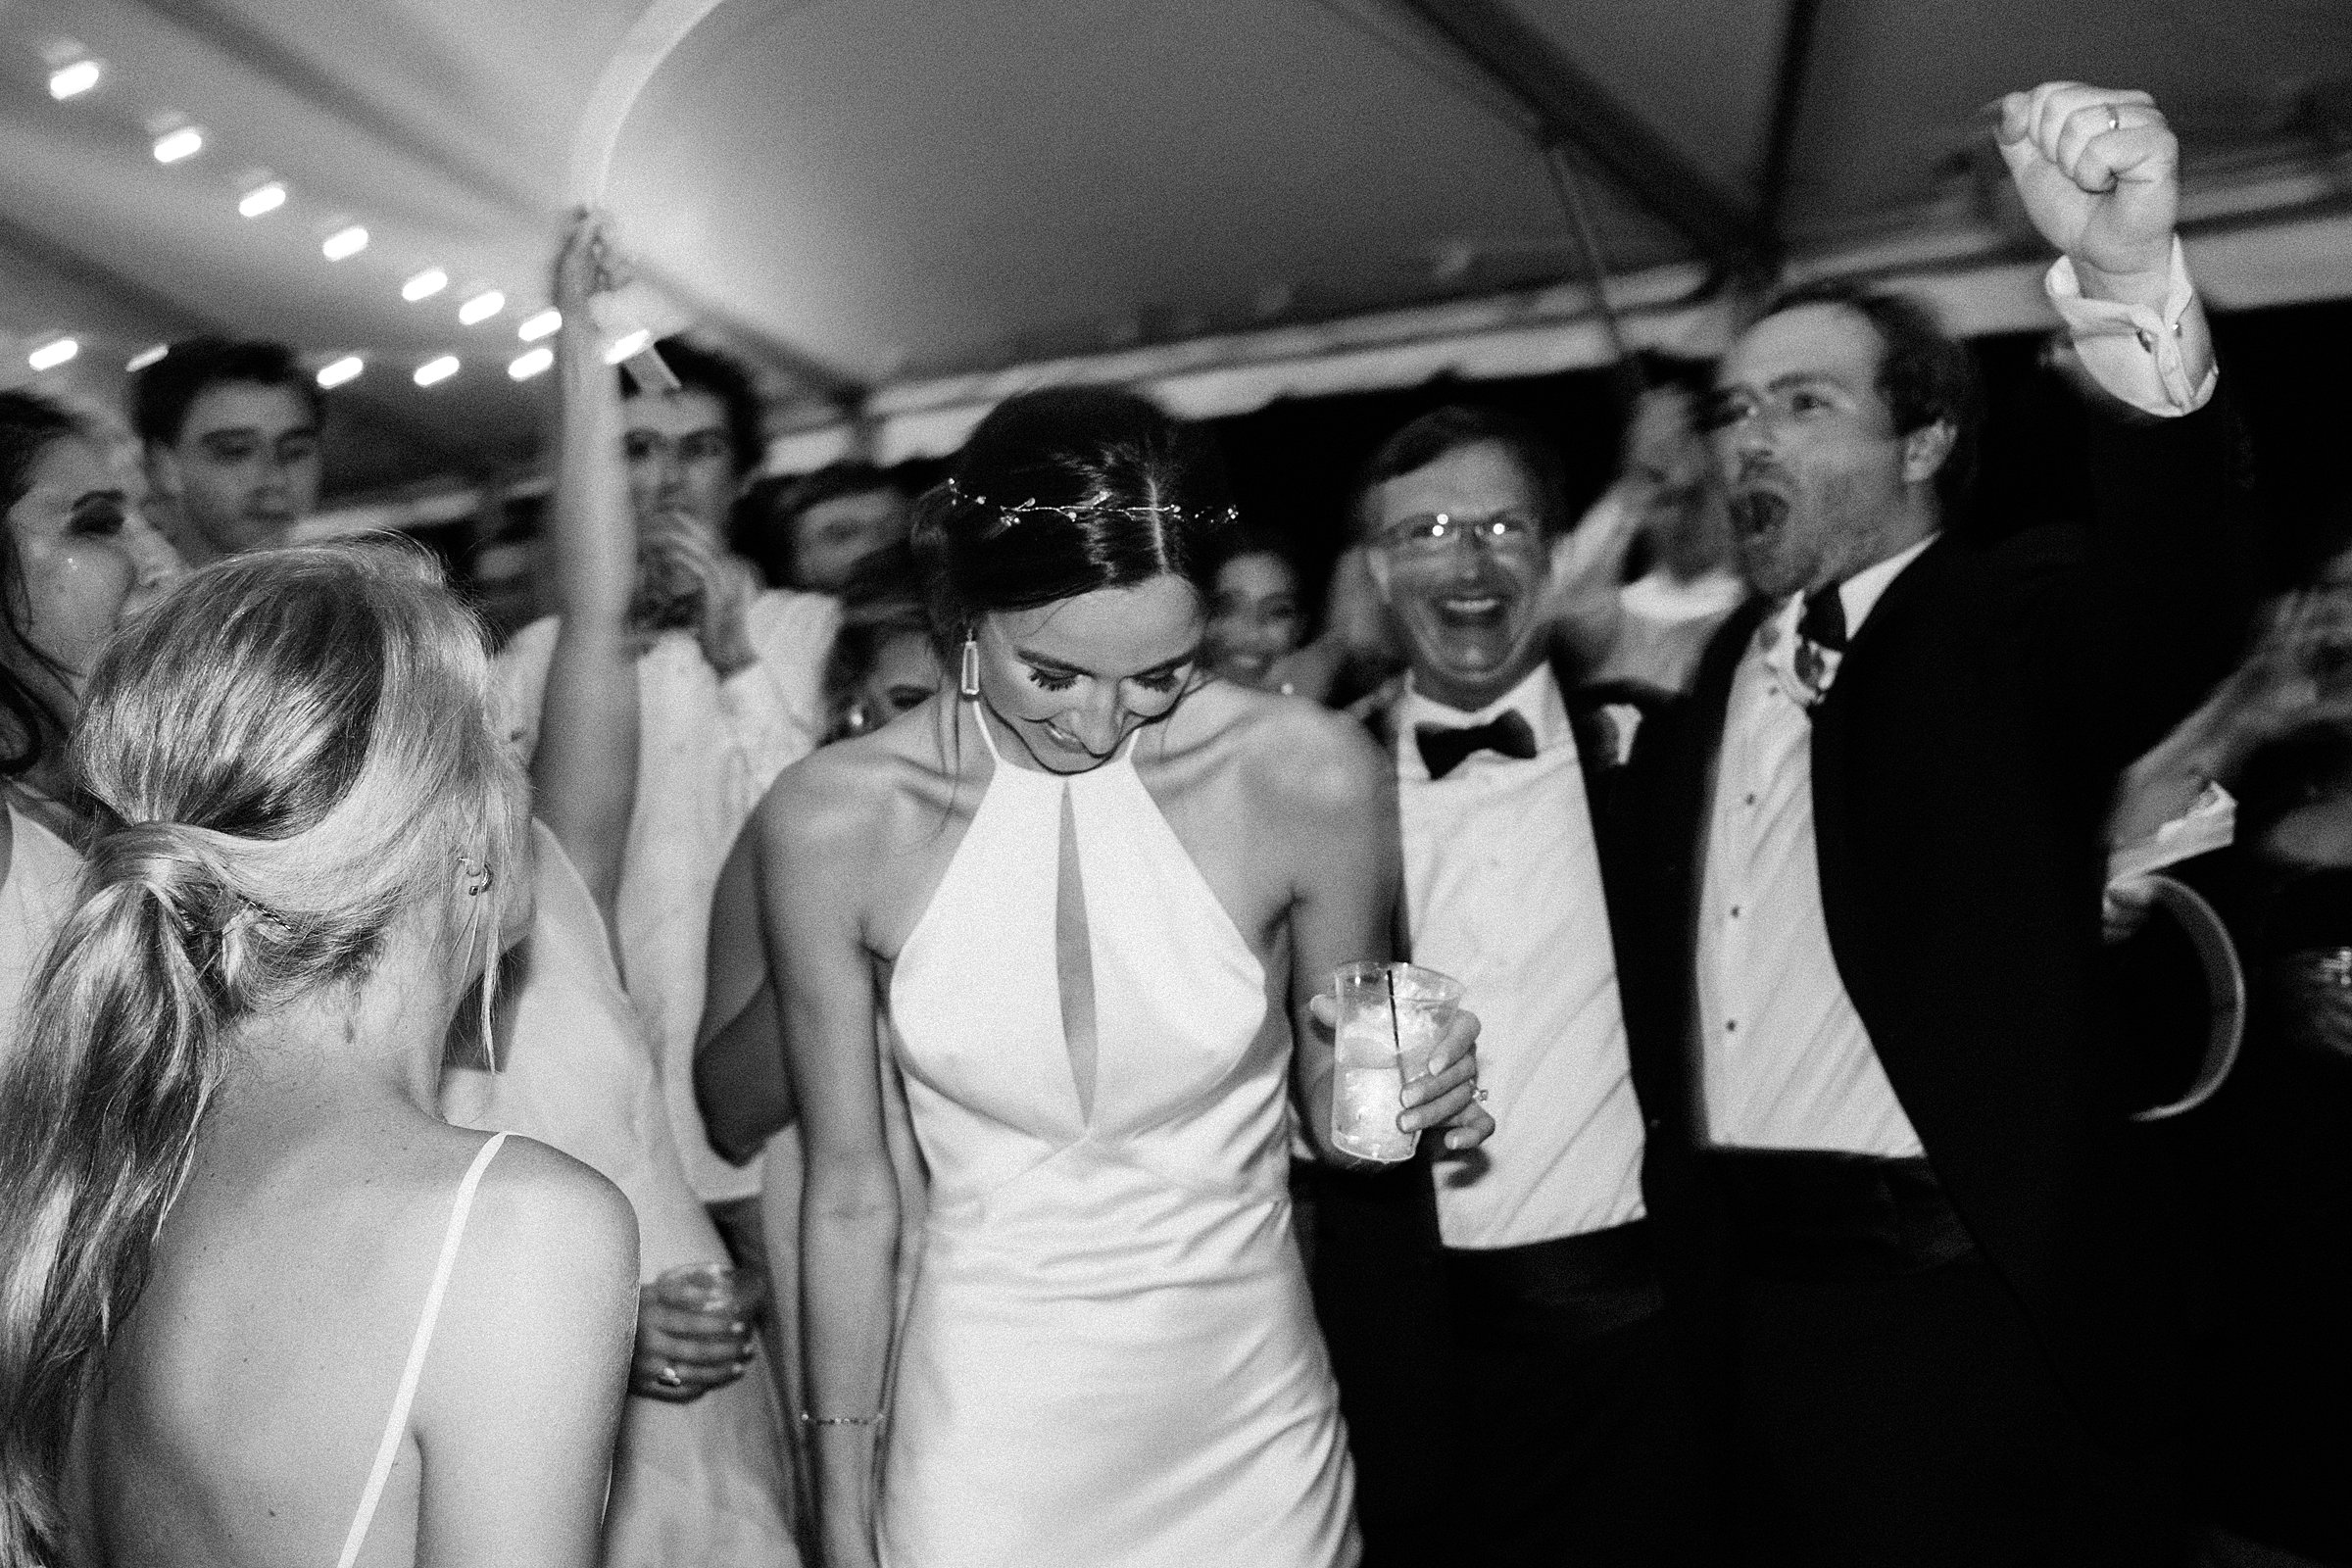 bride laughing during wedding reception in black and white photograph at legare waring charleston sc venue